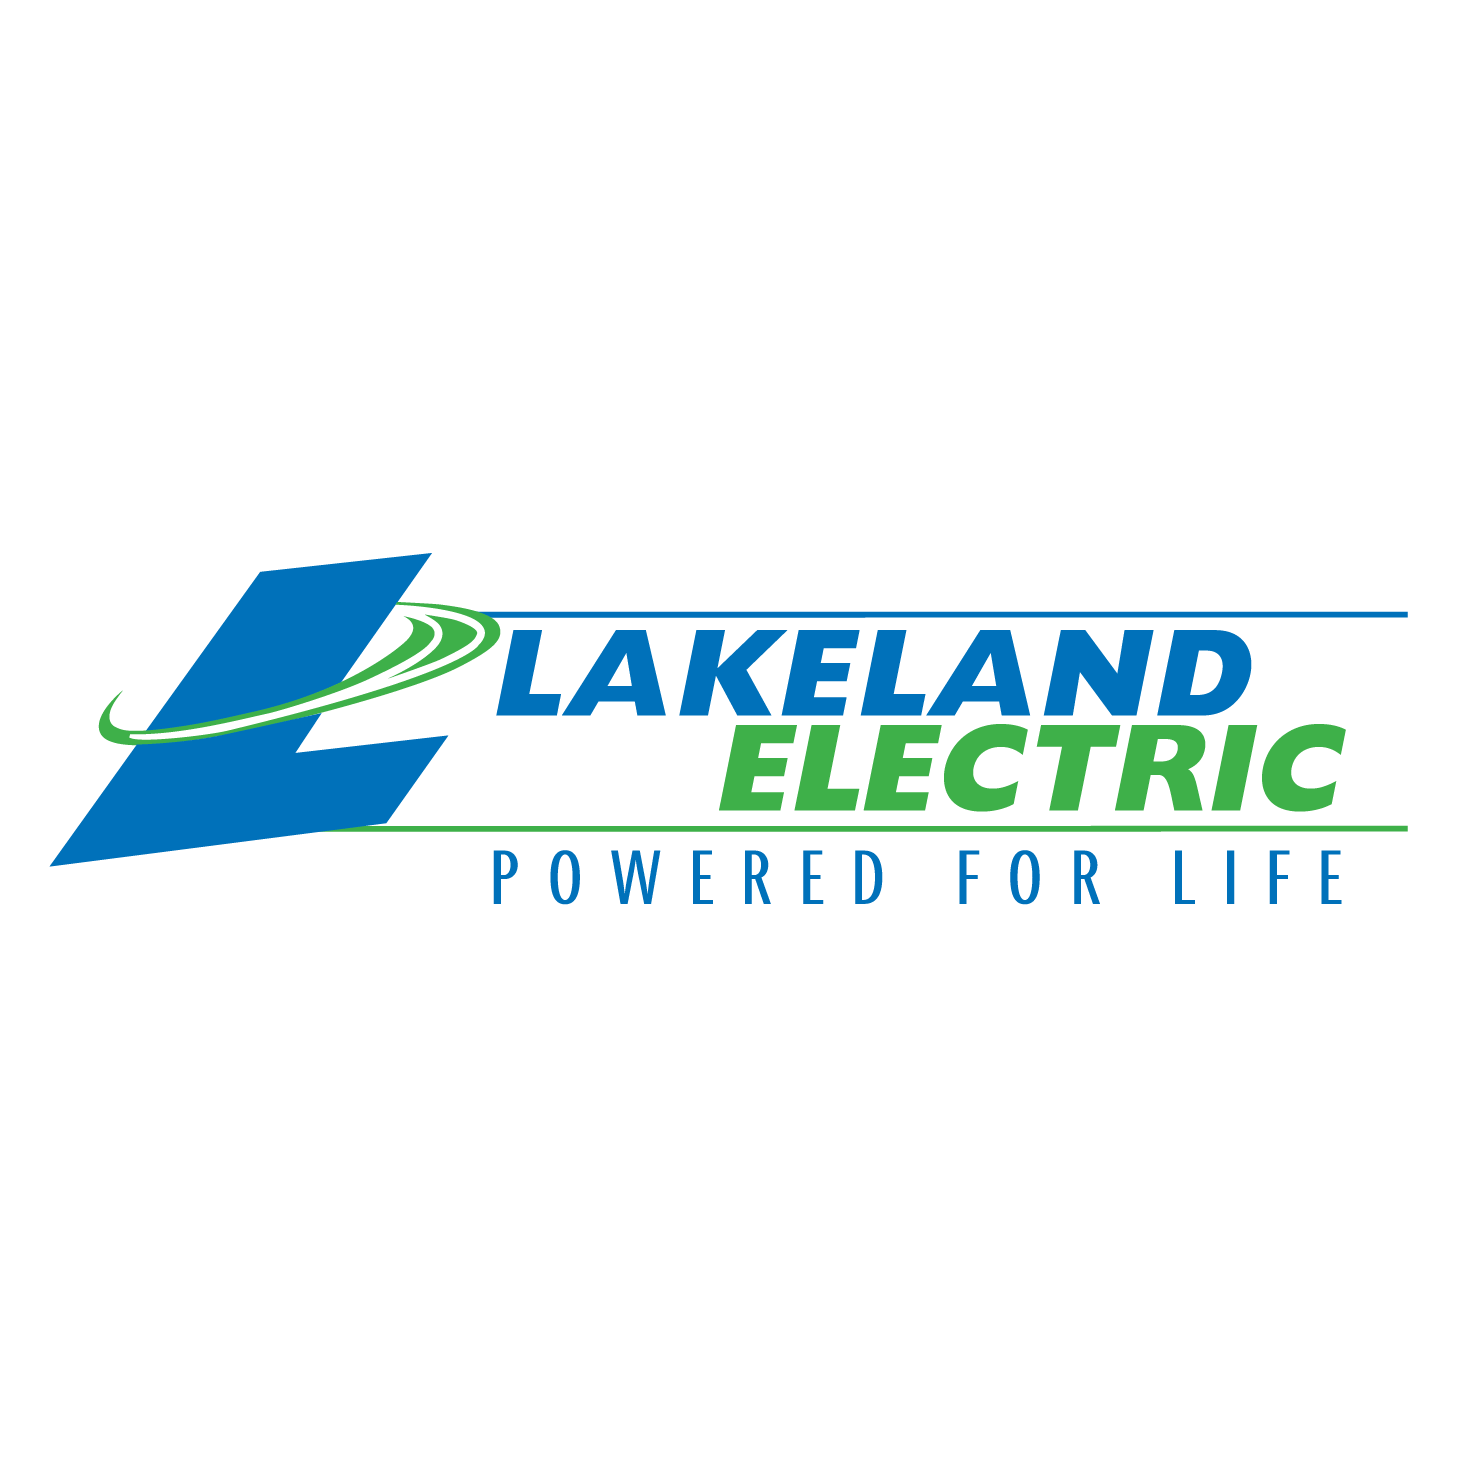 Lakeland Electric image 5